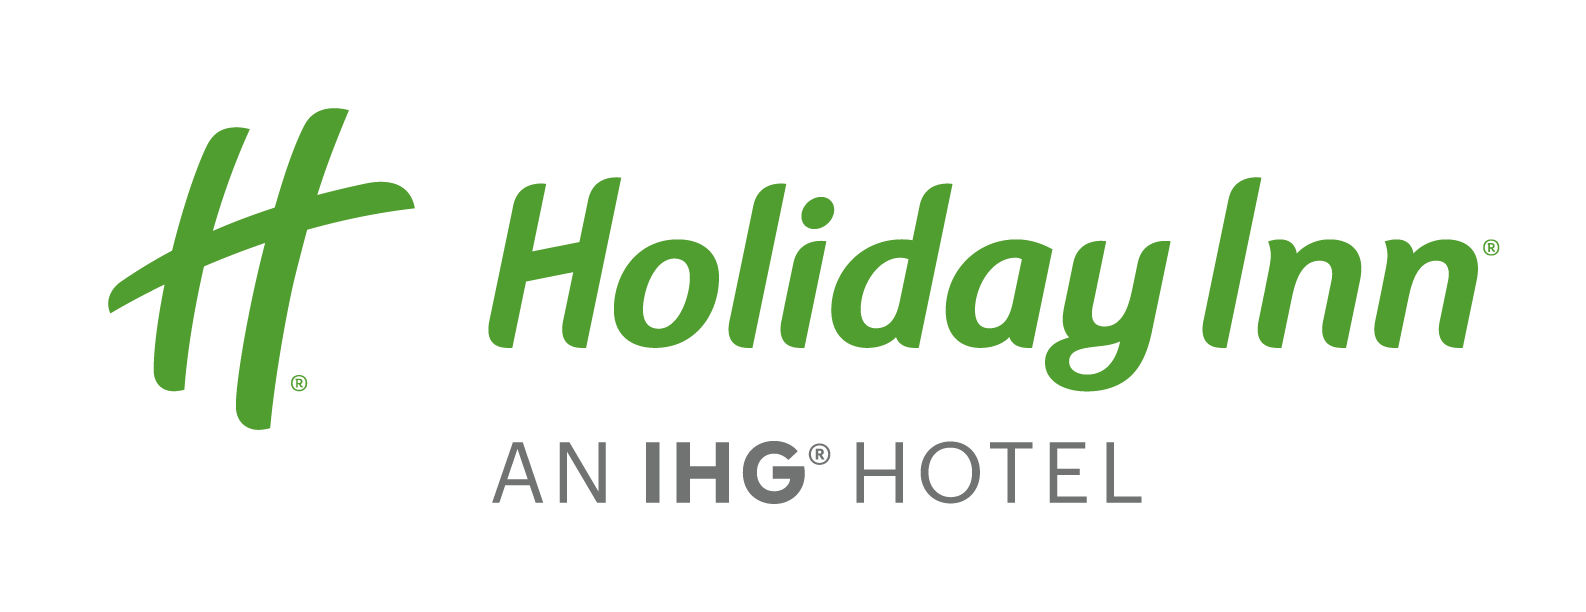 holiday inn an ?hg hotel png logo #6545